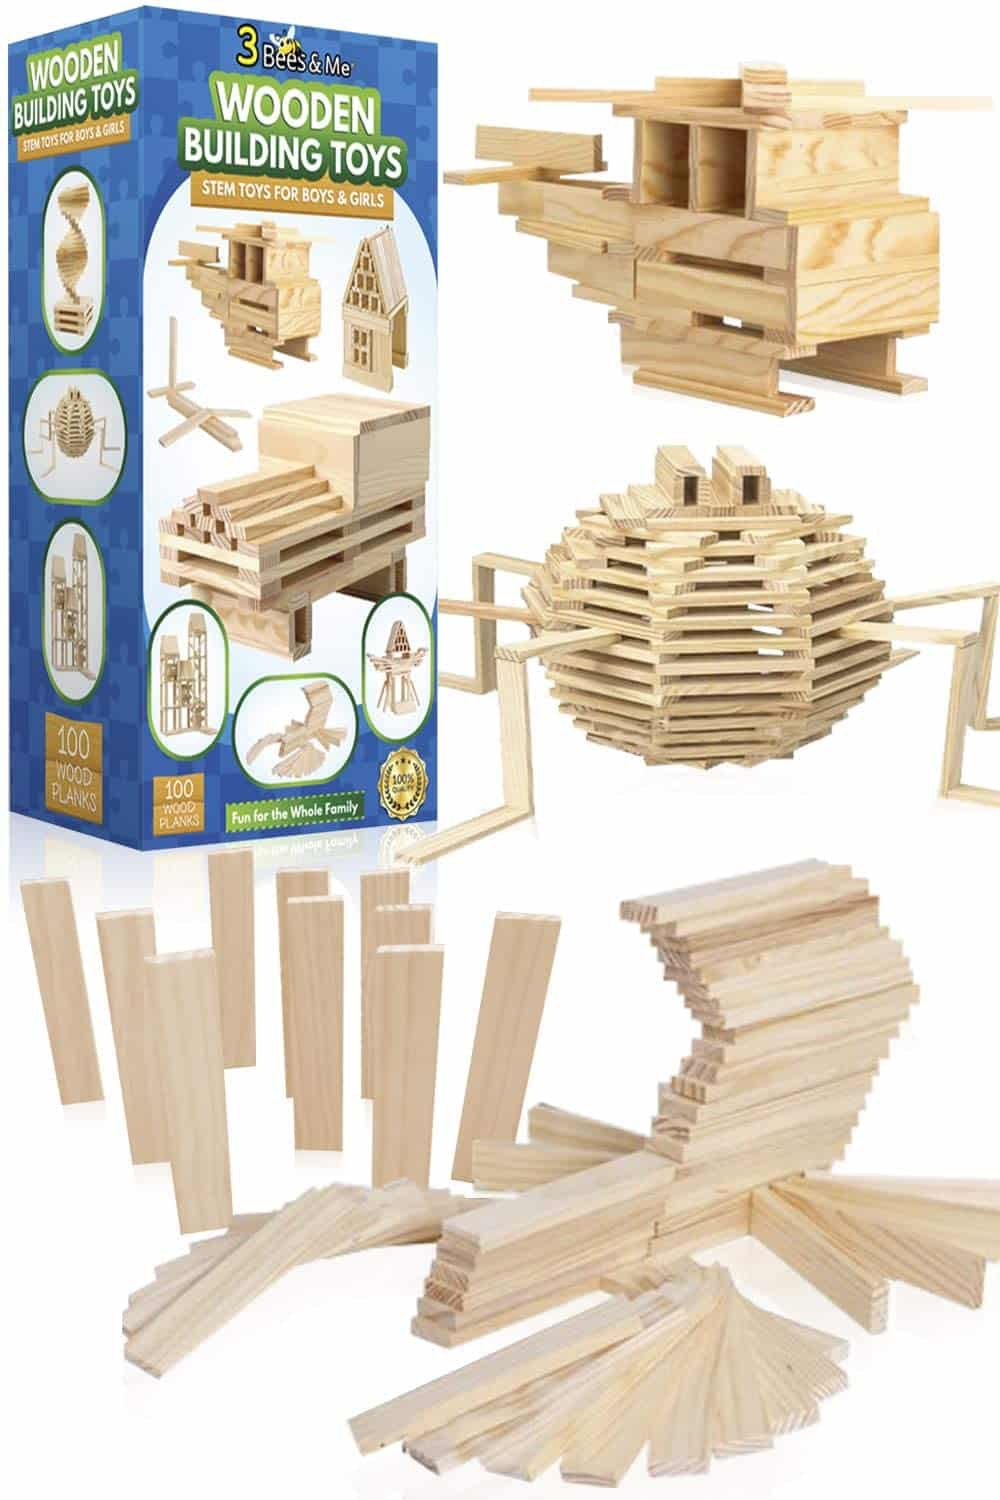 3 Bees & Me Wooden Building Toys